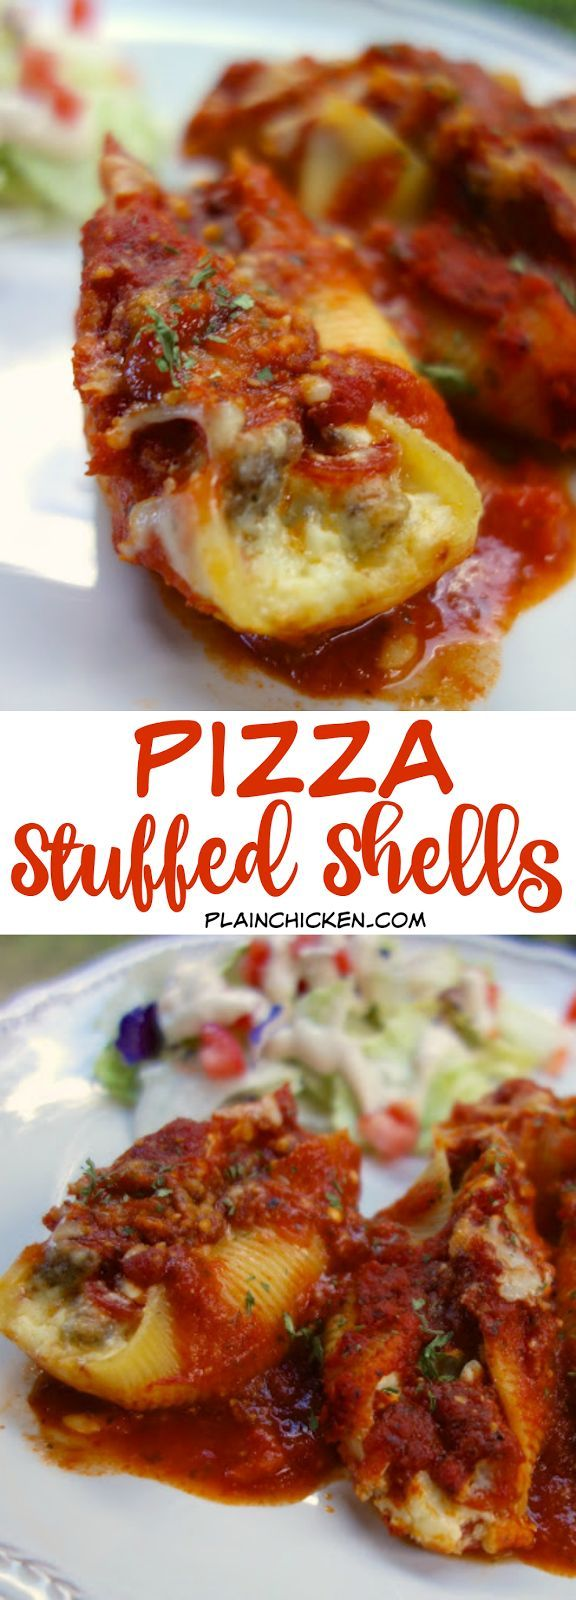 Pizza Stuffed Shells - jumbo pasta shells stuffed with cheese, sausage and pepperoni ,topped with spaghetti sauce and mozzarella - SO good! Kids and adults gobble this up!! Can make ahead of time and freeze for later.